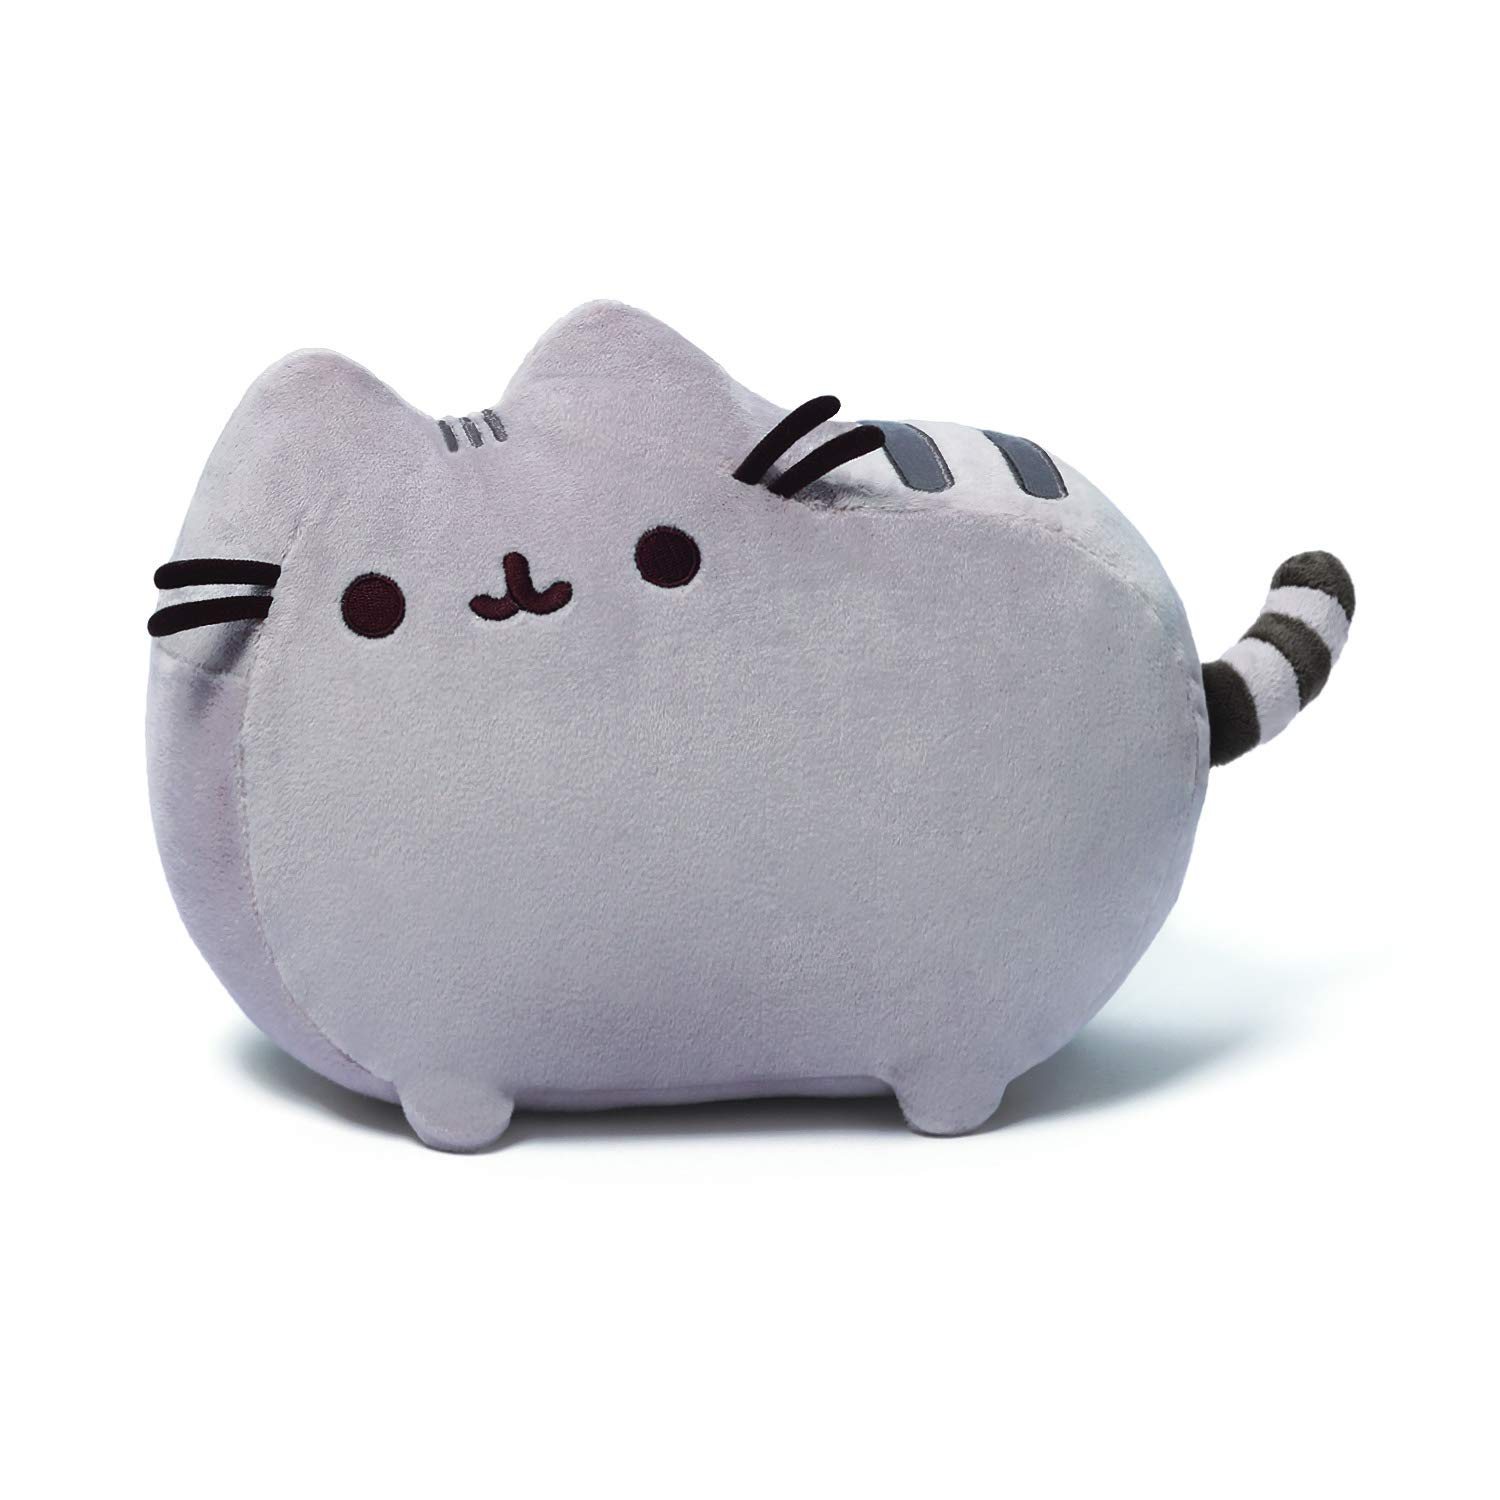 97236fe17 GUND Pusheen Small: Gund: Amazon.co.uk: Toys & Games